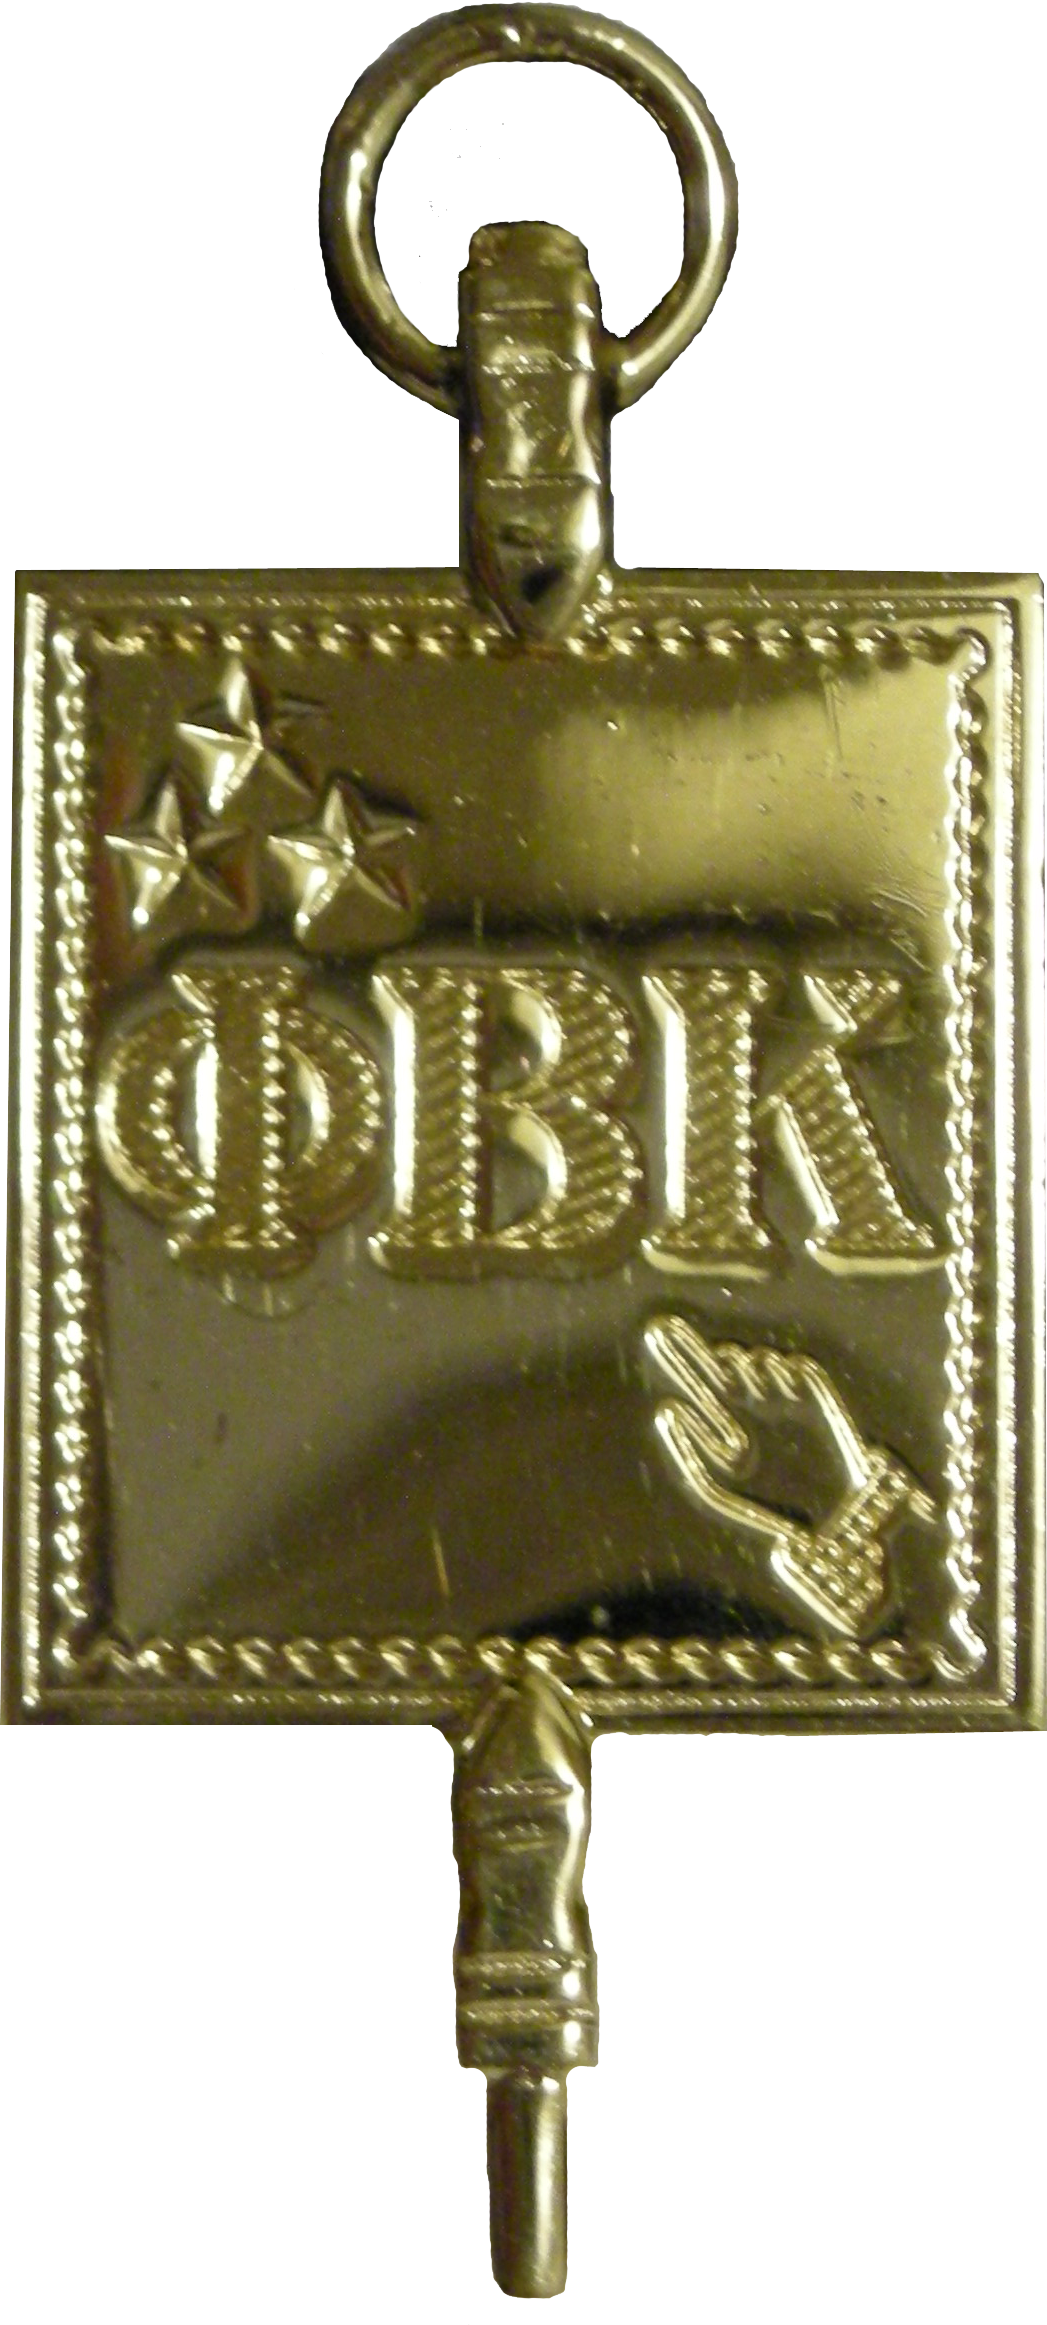 Image of the PBK key